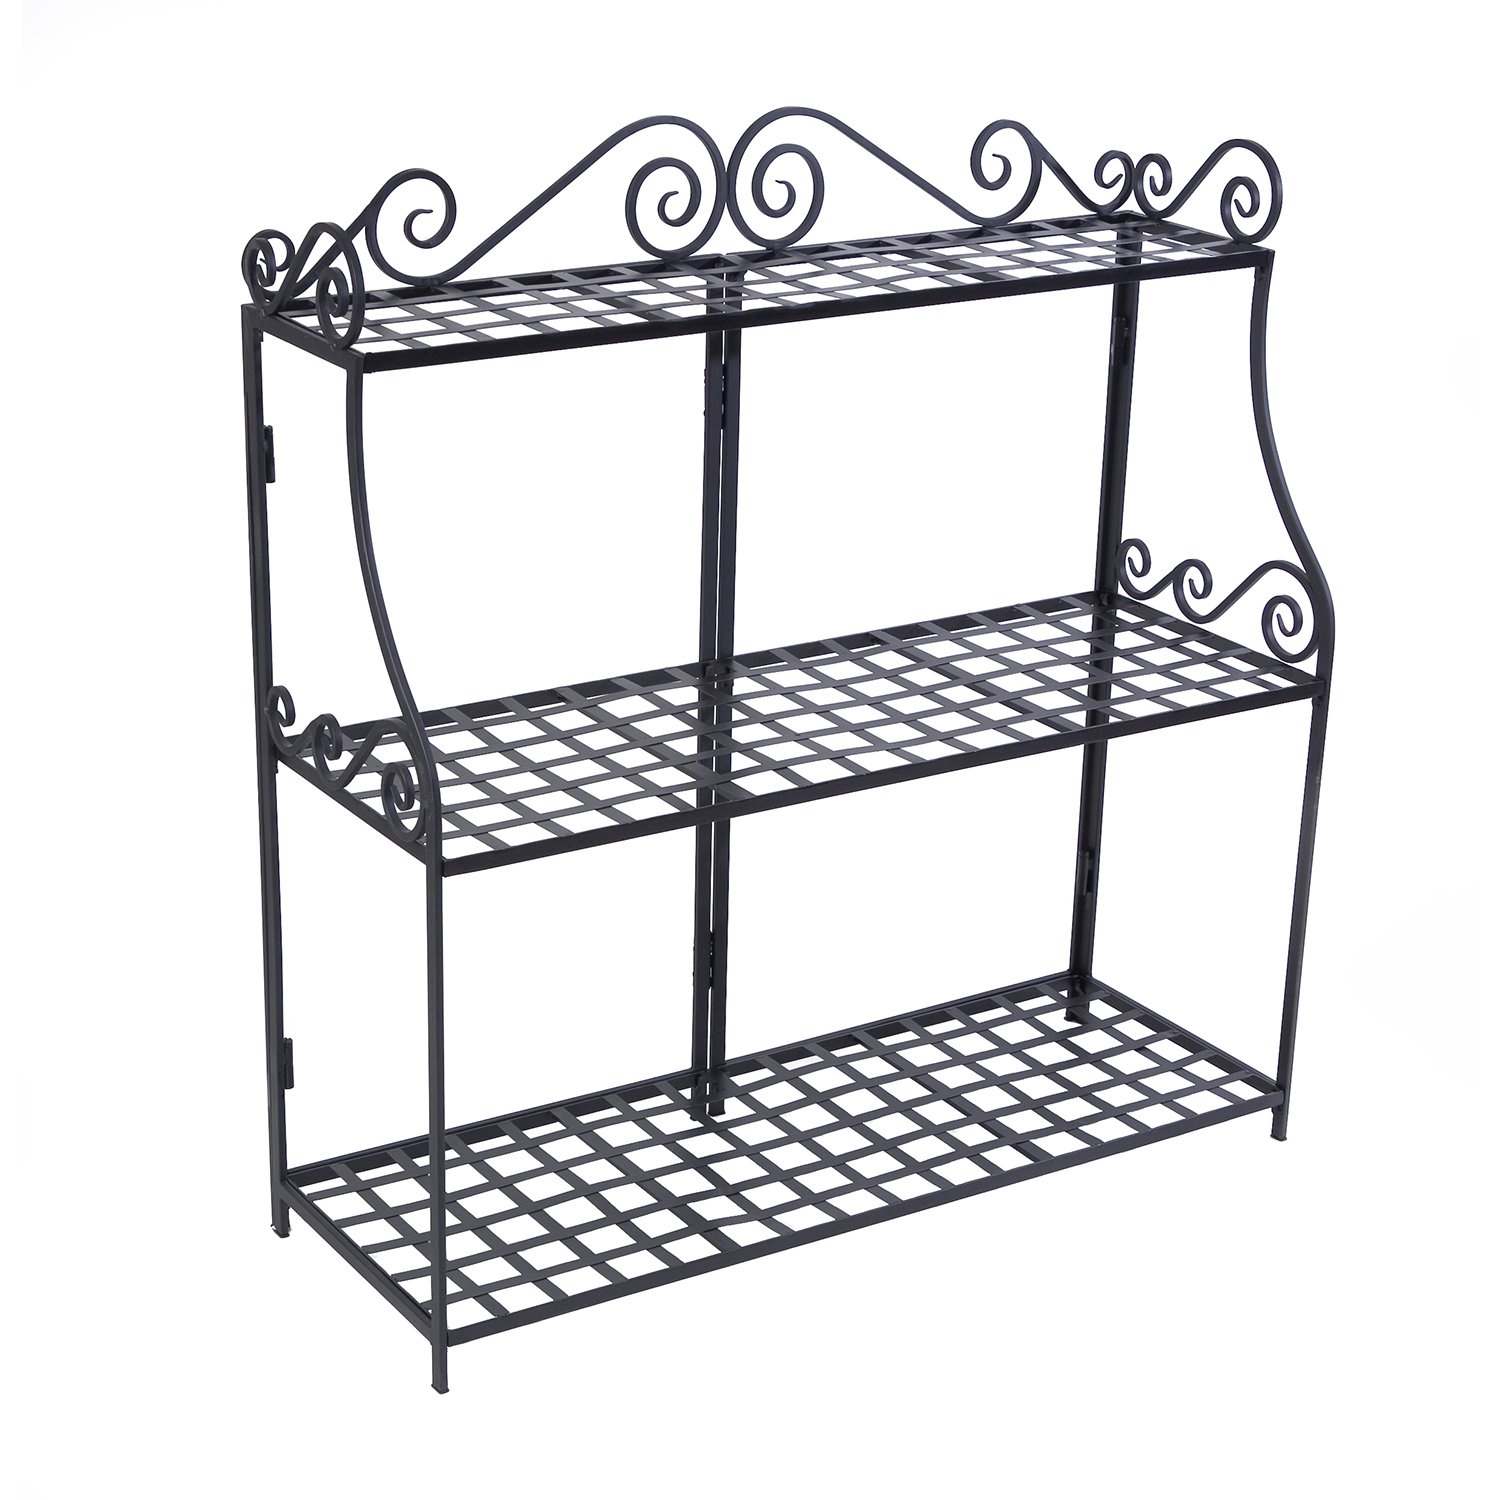 Panacea Products Forged 3-Tier Plant Stand, Black by Panacea Products